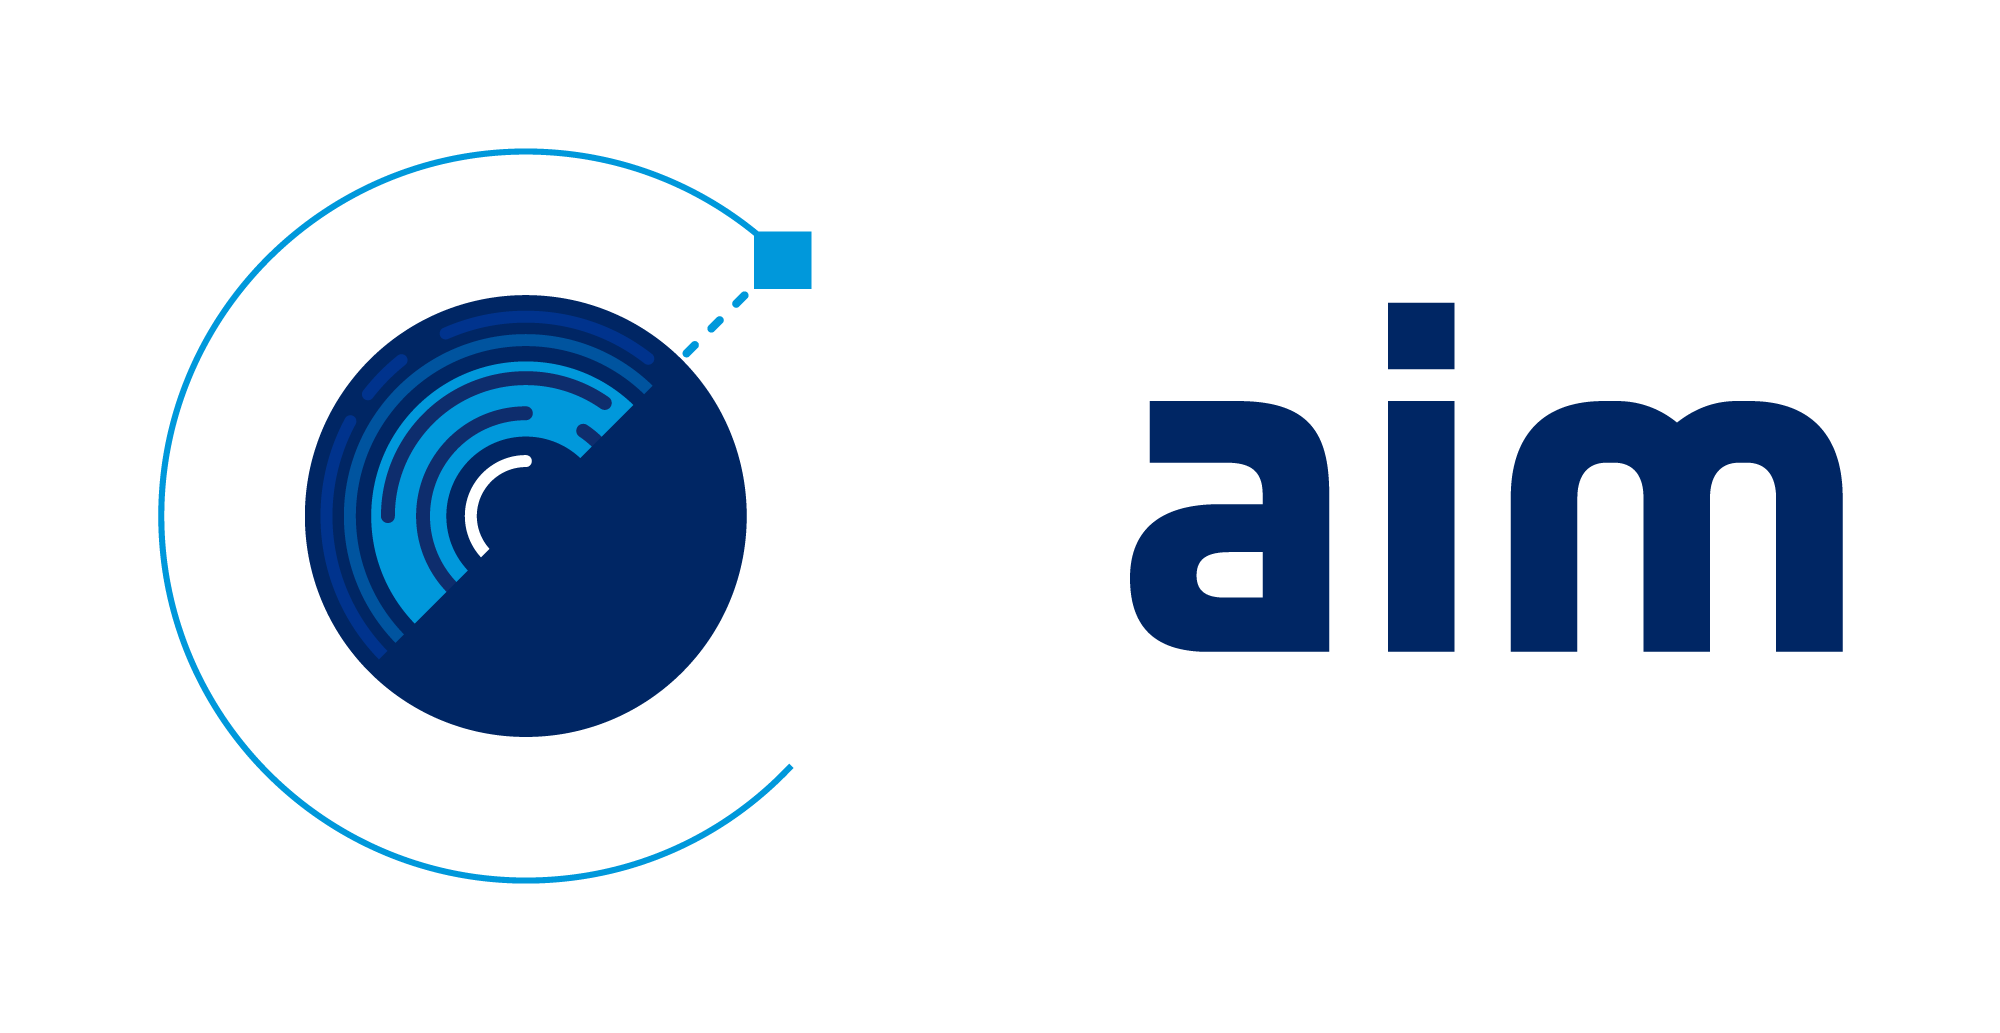 space in images 2015 09 aim logo